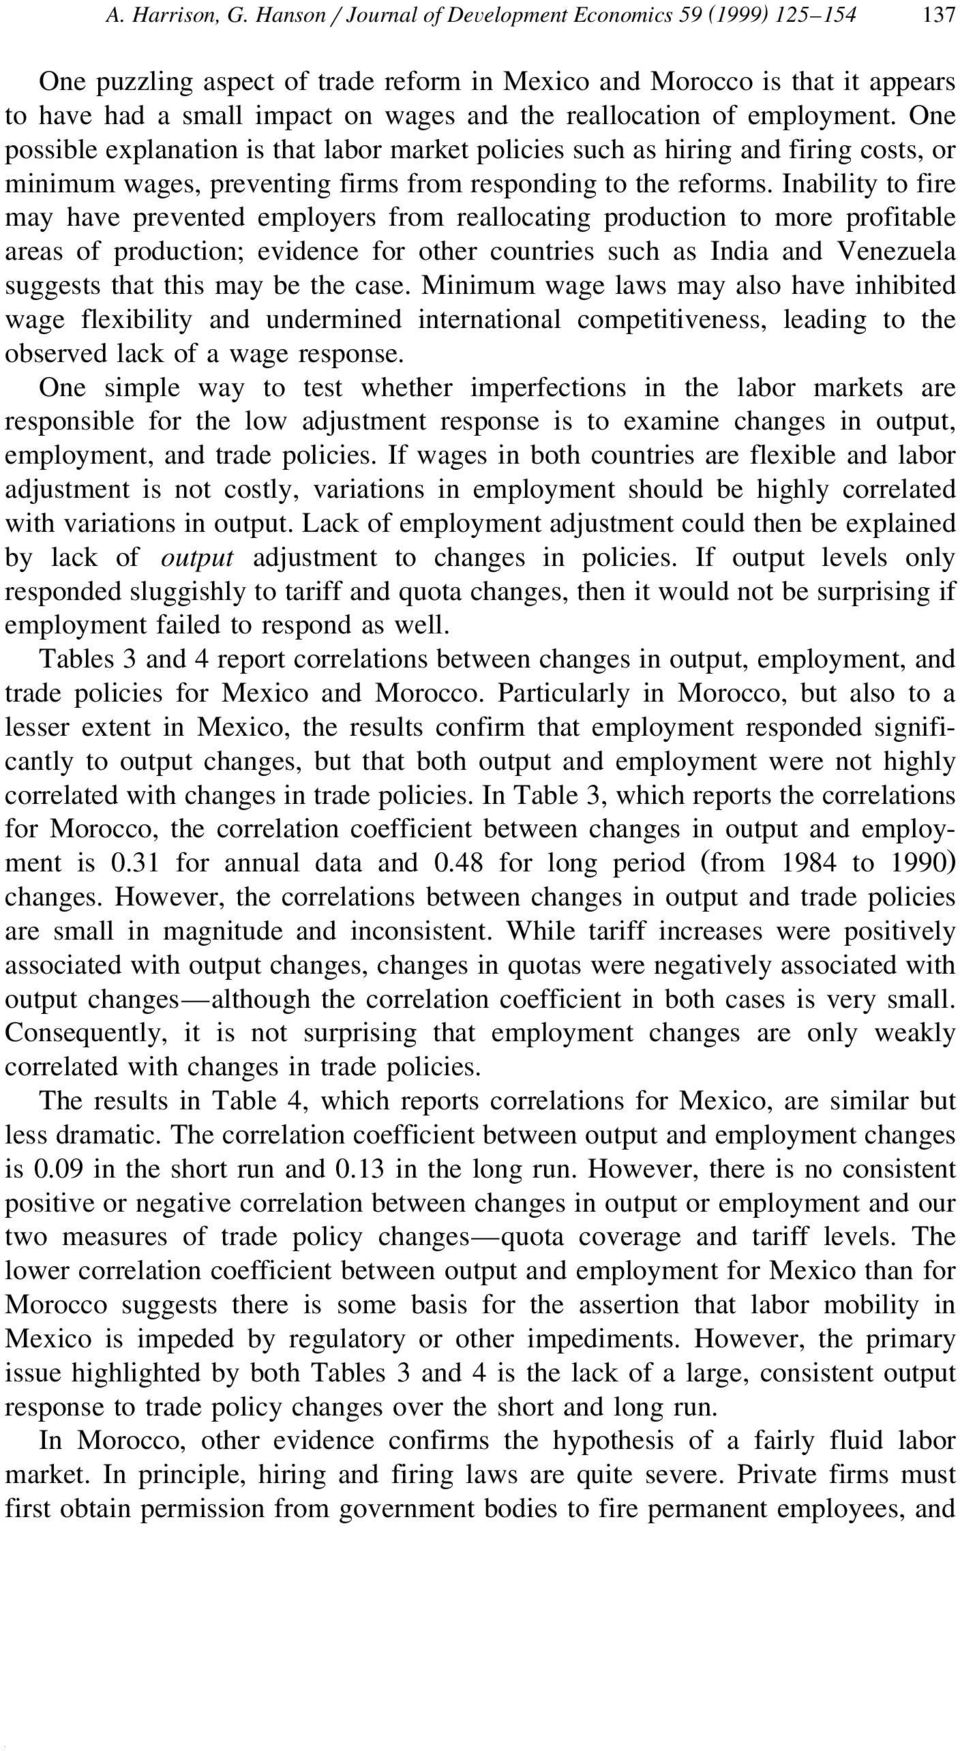 employment. One possible explanation is that labor market policies such as hiring and firing costs, or minimum wages, preventing firms from responding to the reforms.